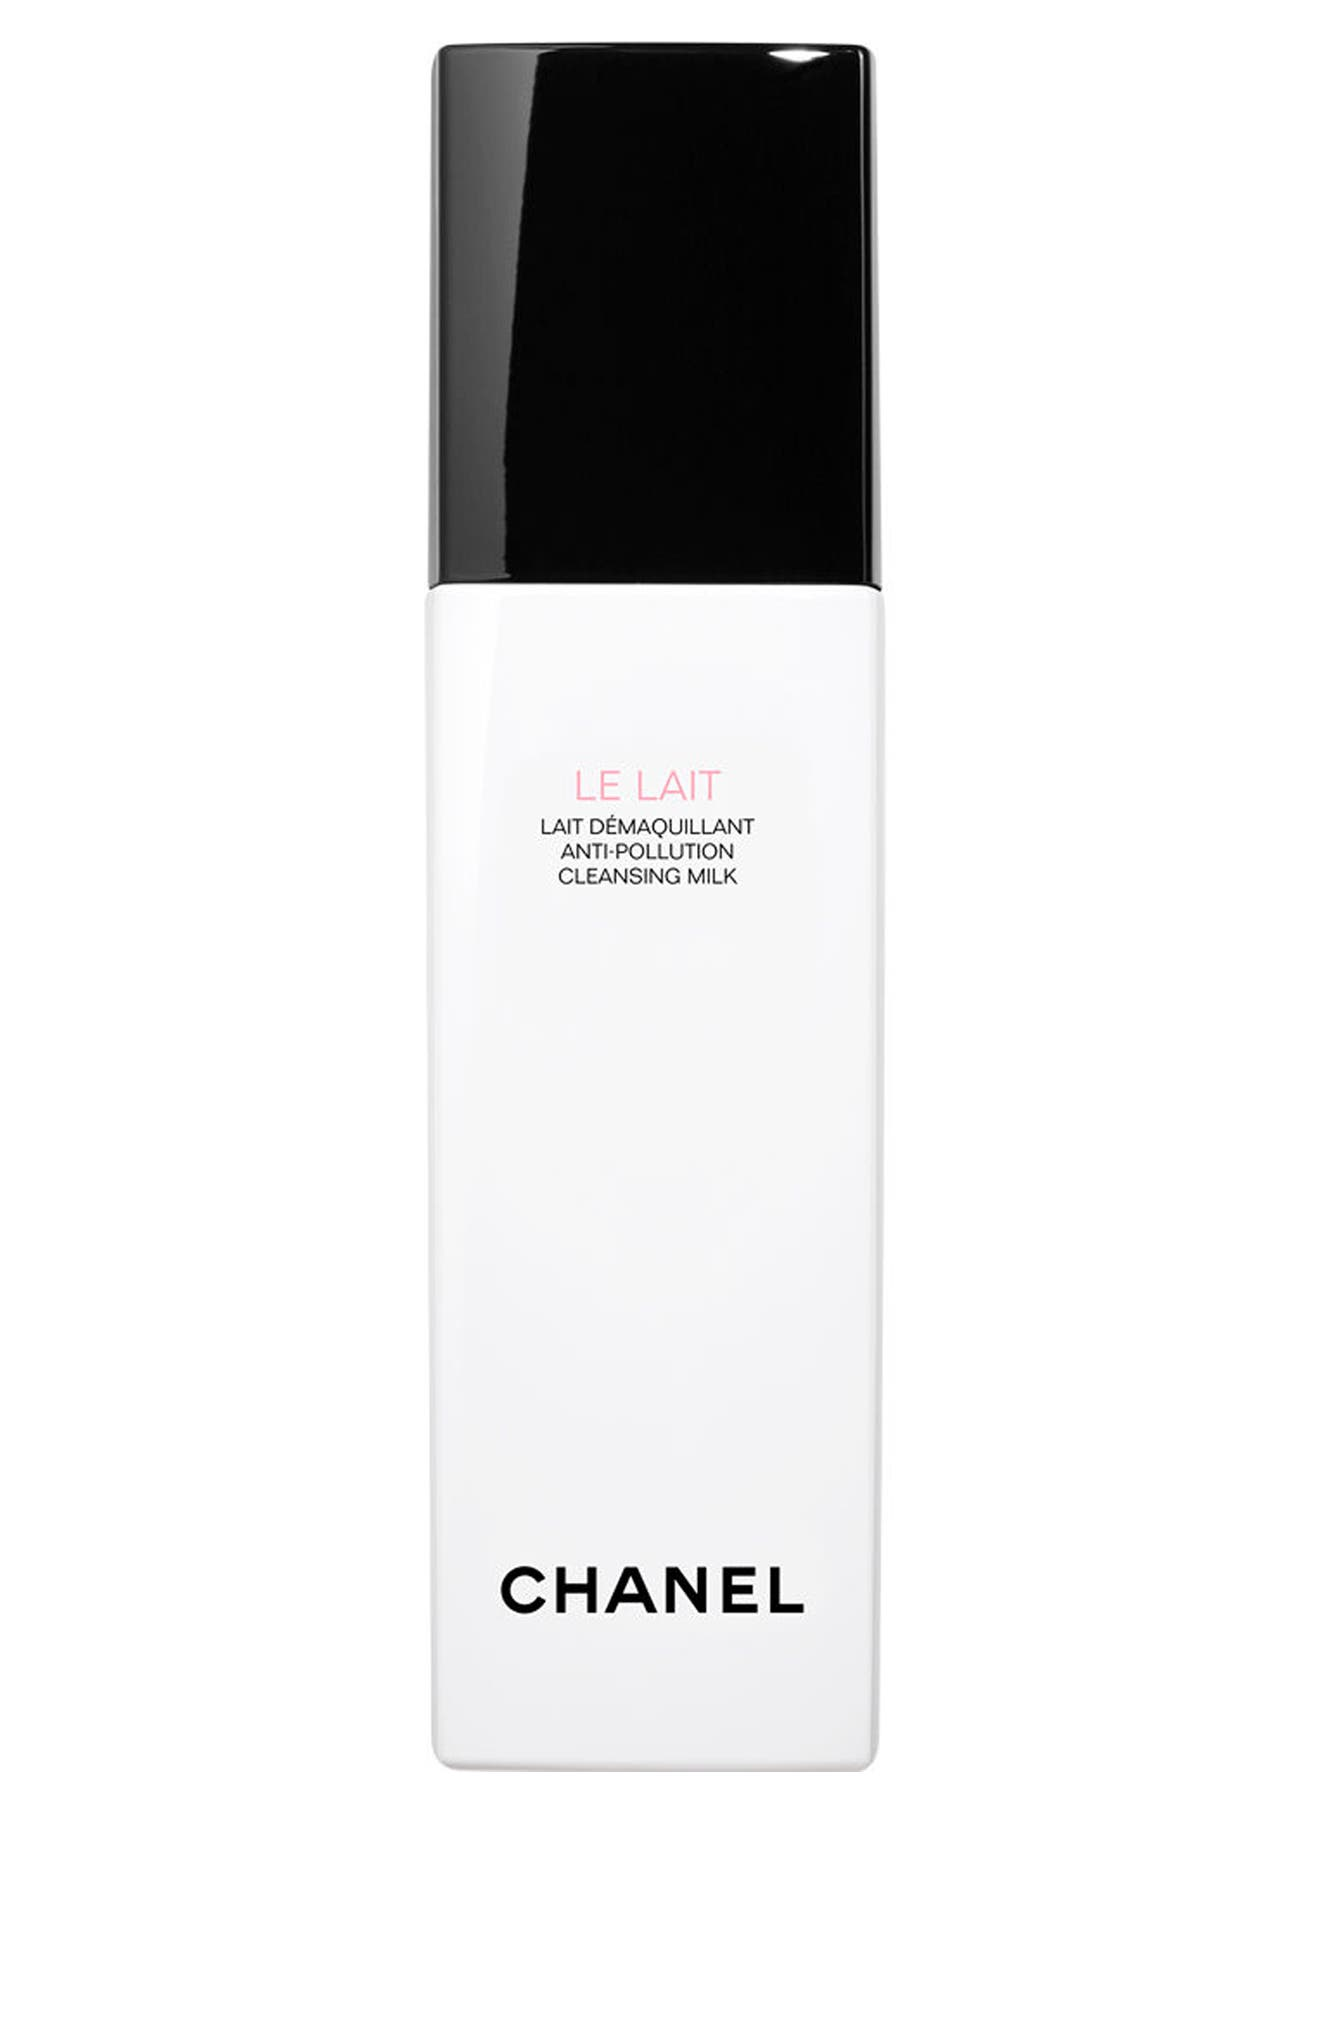 CHANEL LE LAIT 